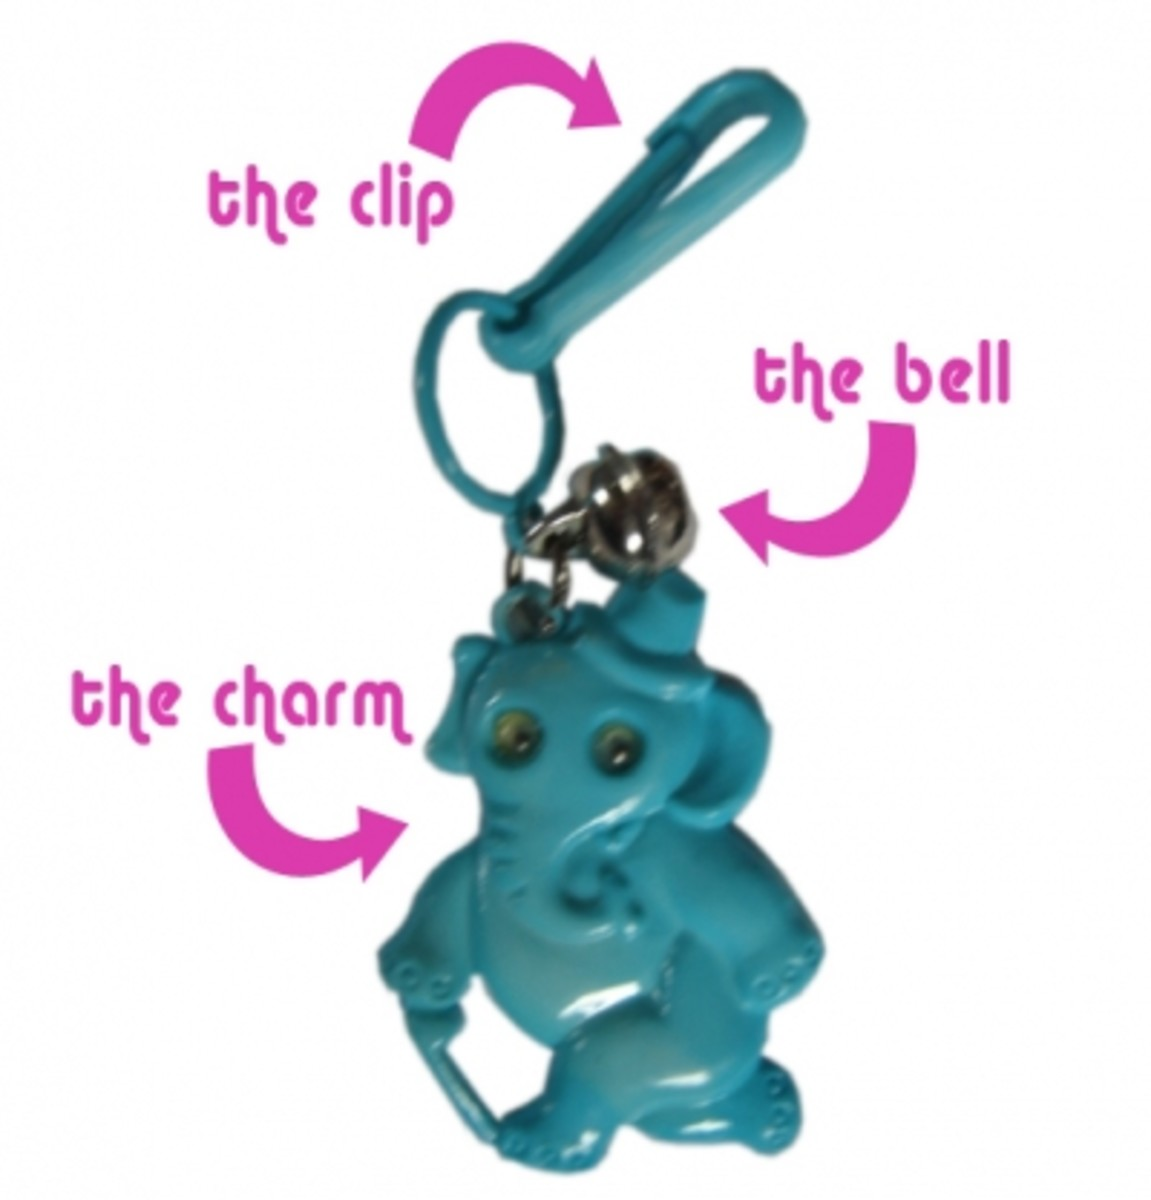 Anatomy of a 1980s Plastic Charm